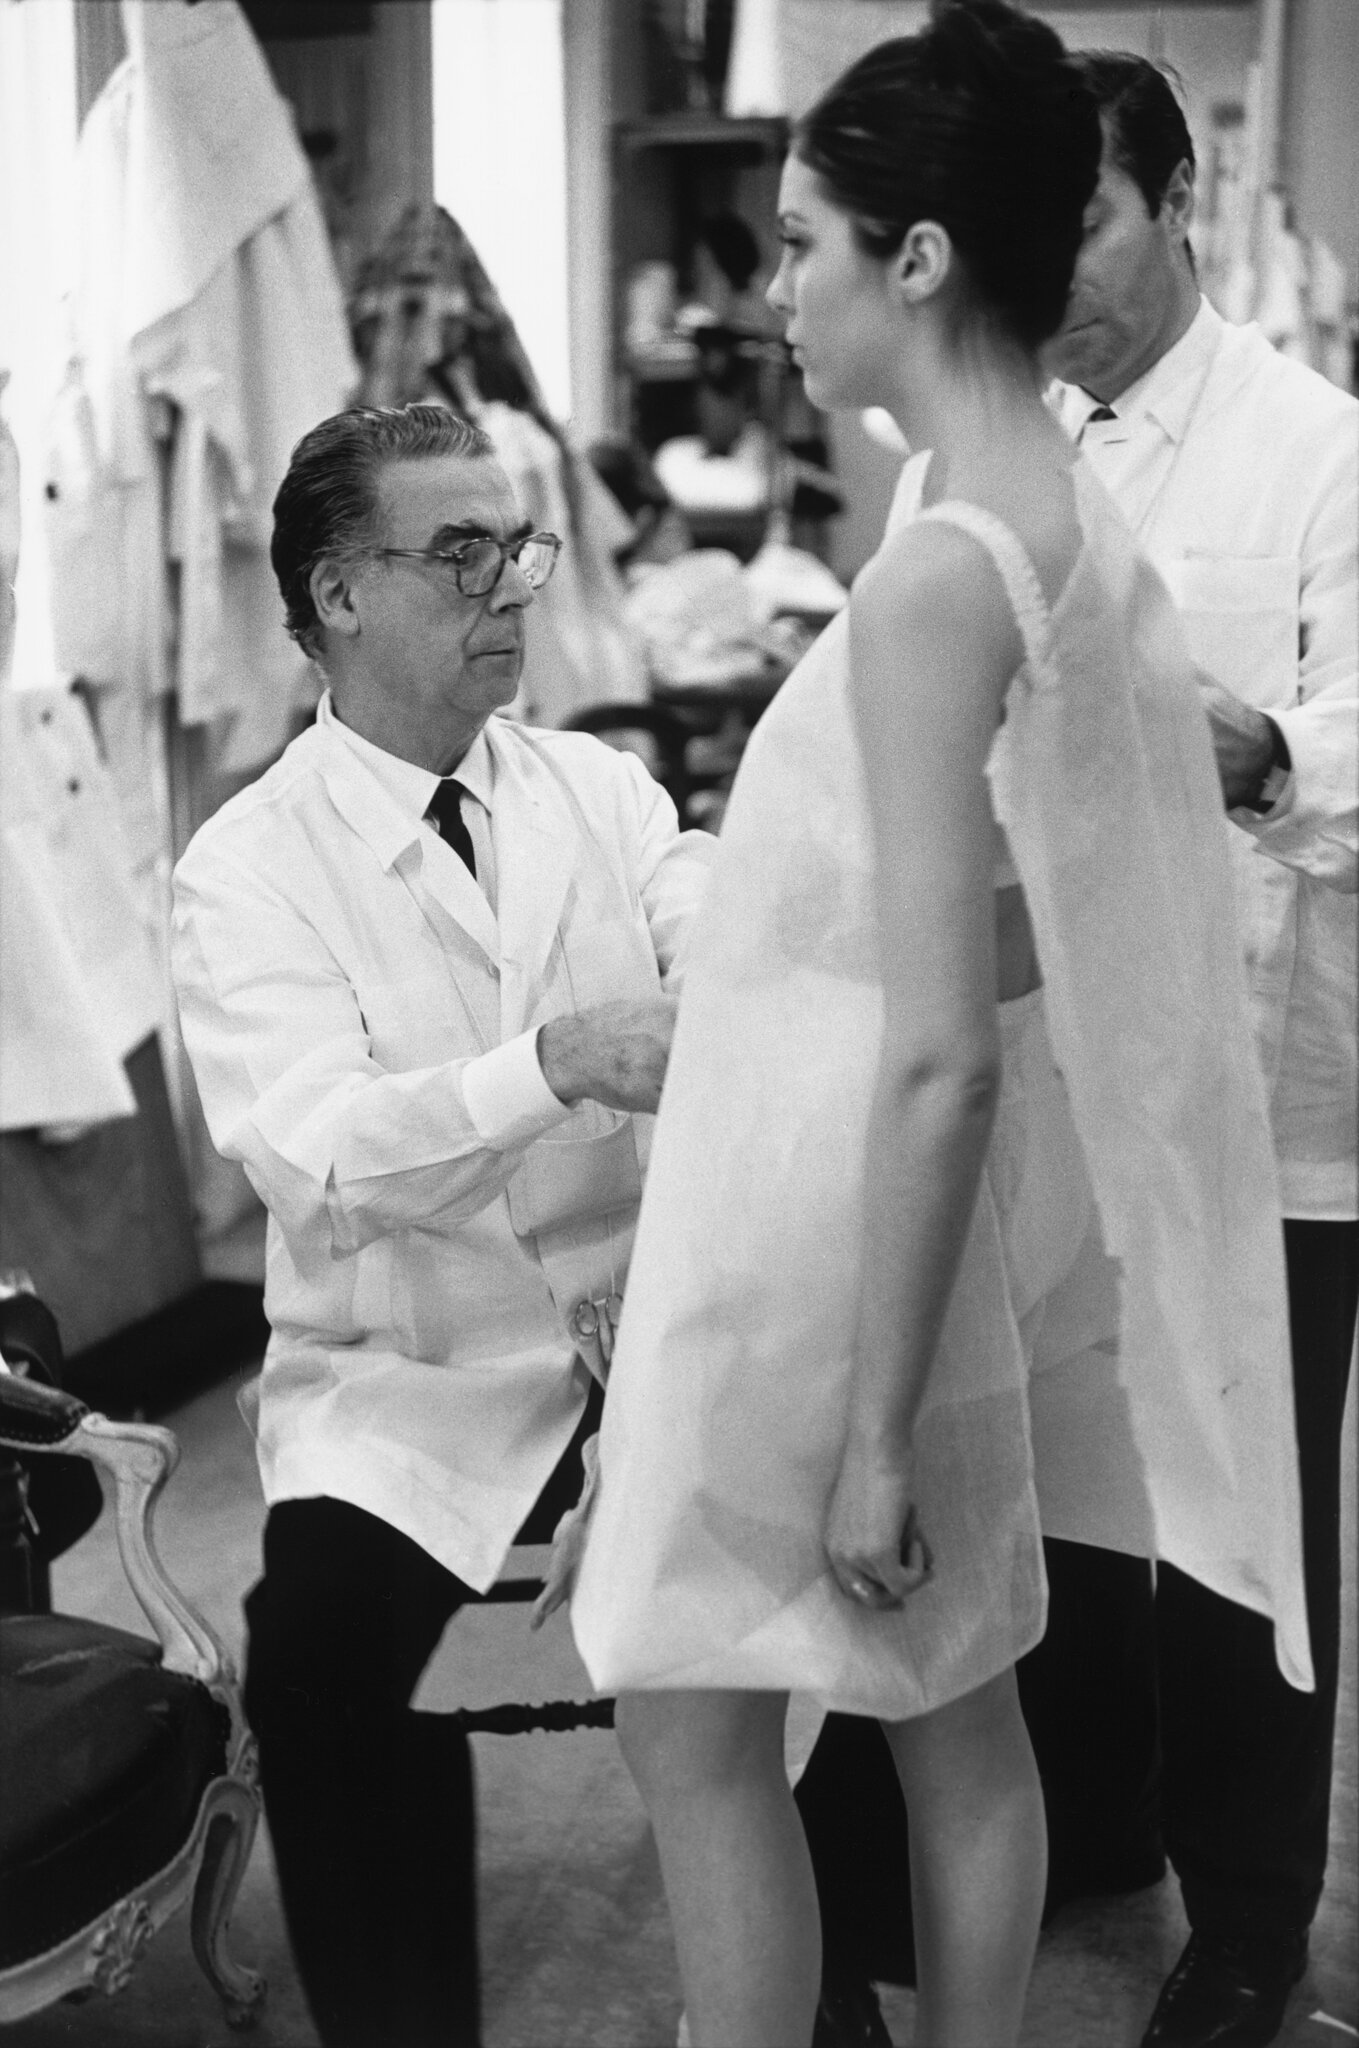 Crist├│bal_Balenciaga_at_work_Paris_1968